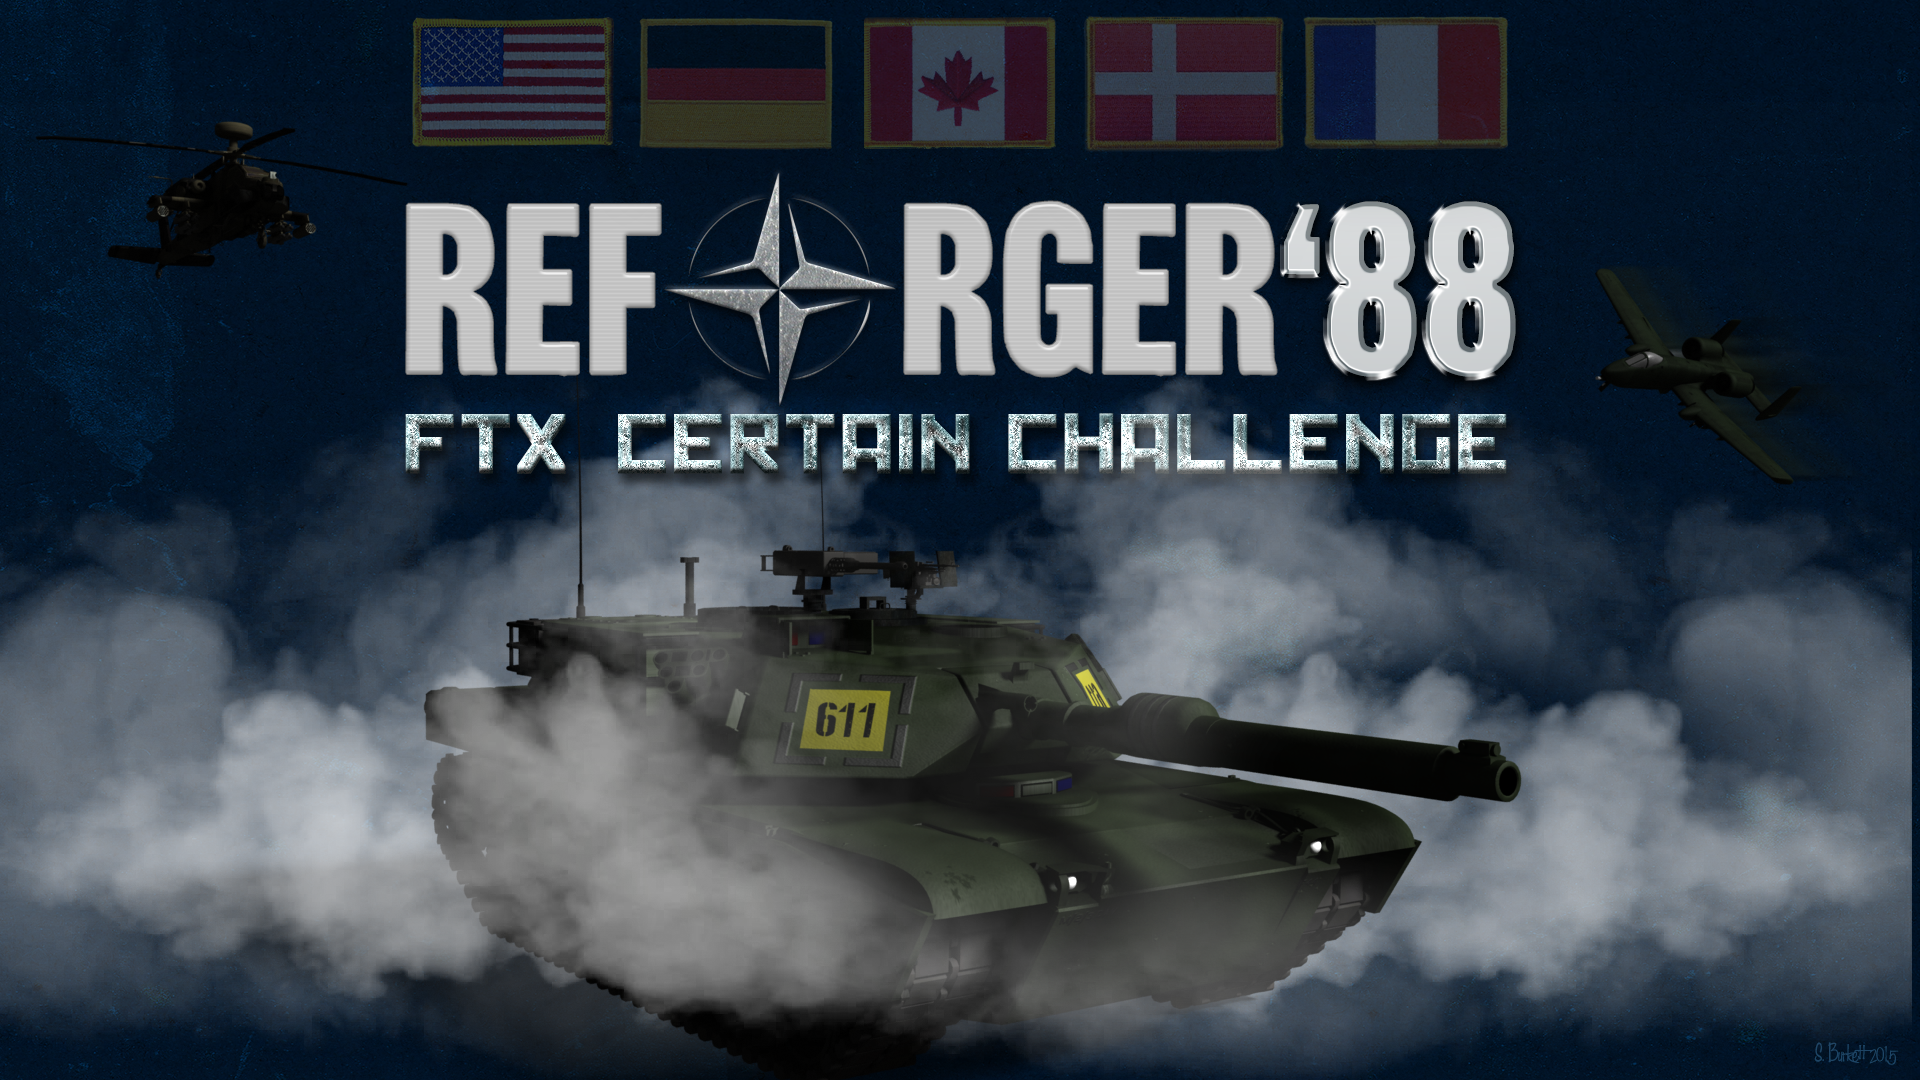 U.S. Army - REFORGER - Certain Challenge